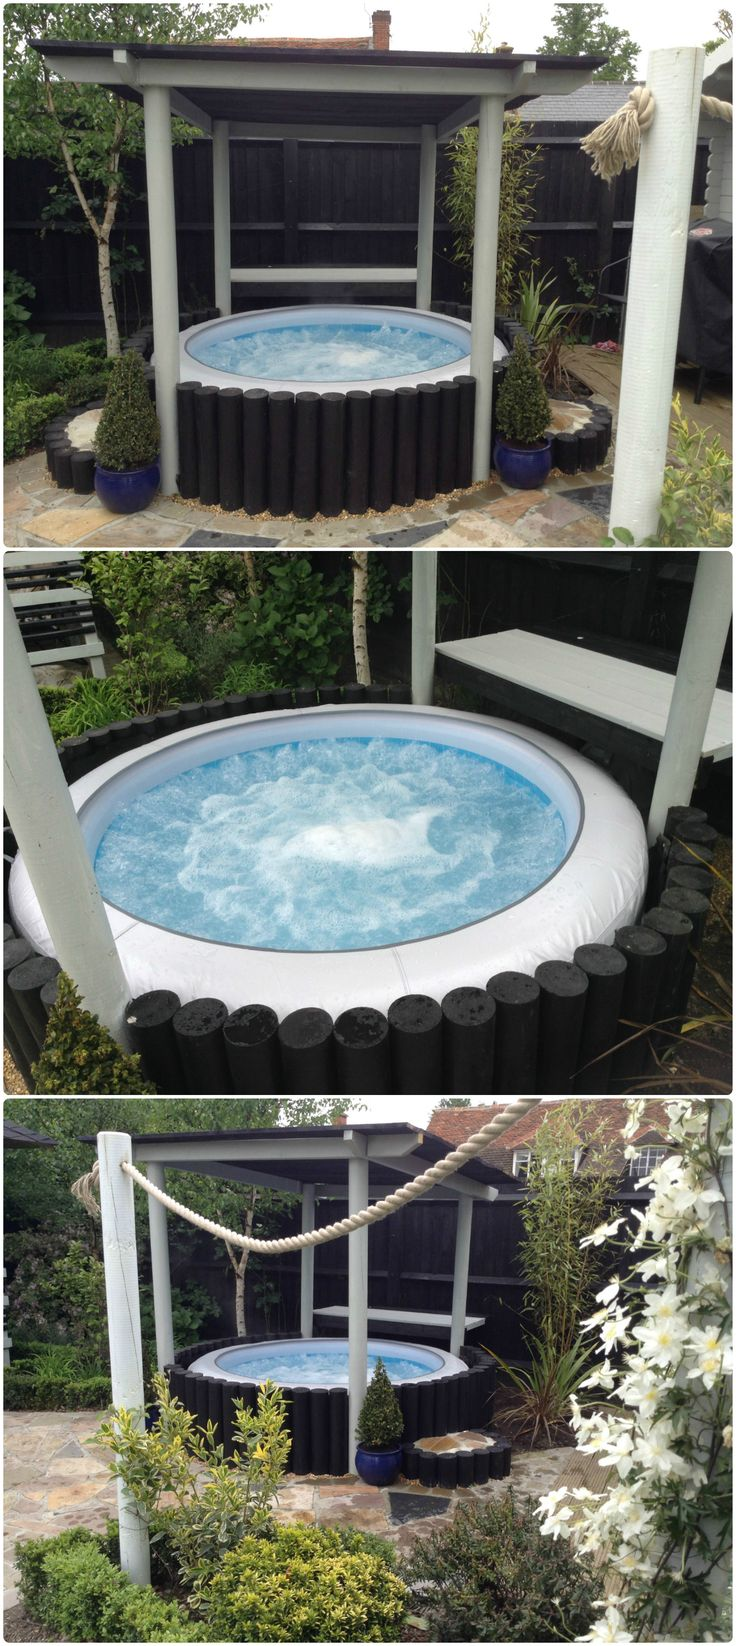 Inflatable hot tub surround for lay z spa hot tub for Gartengestaltung jacuzzi